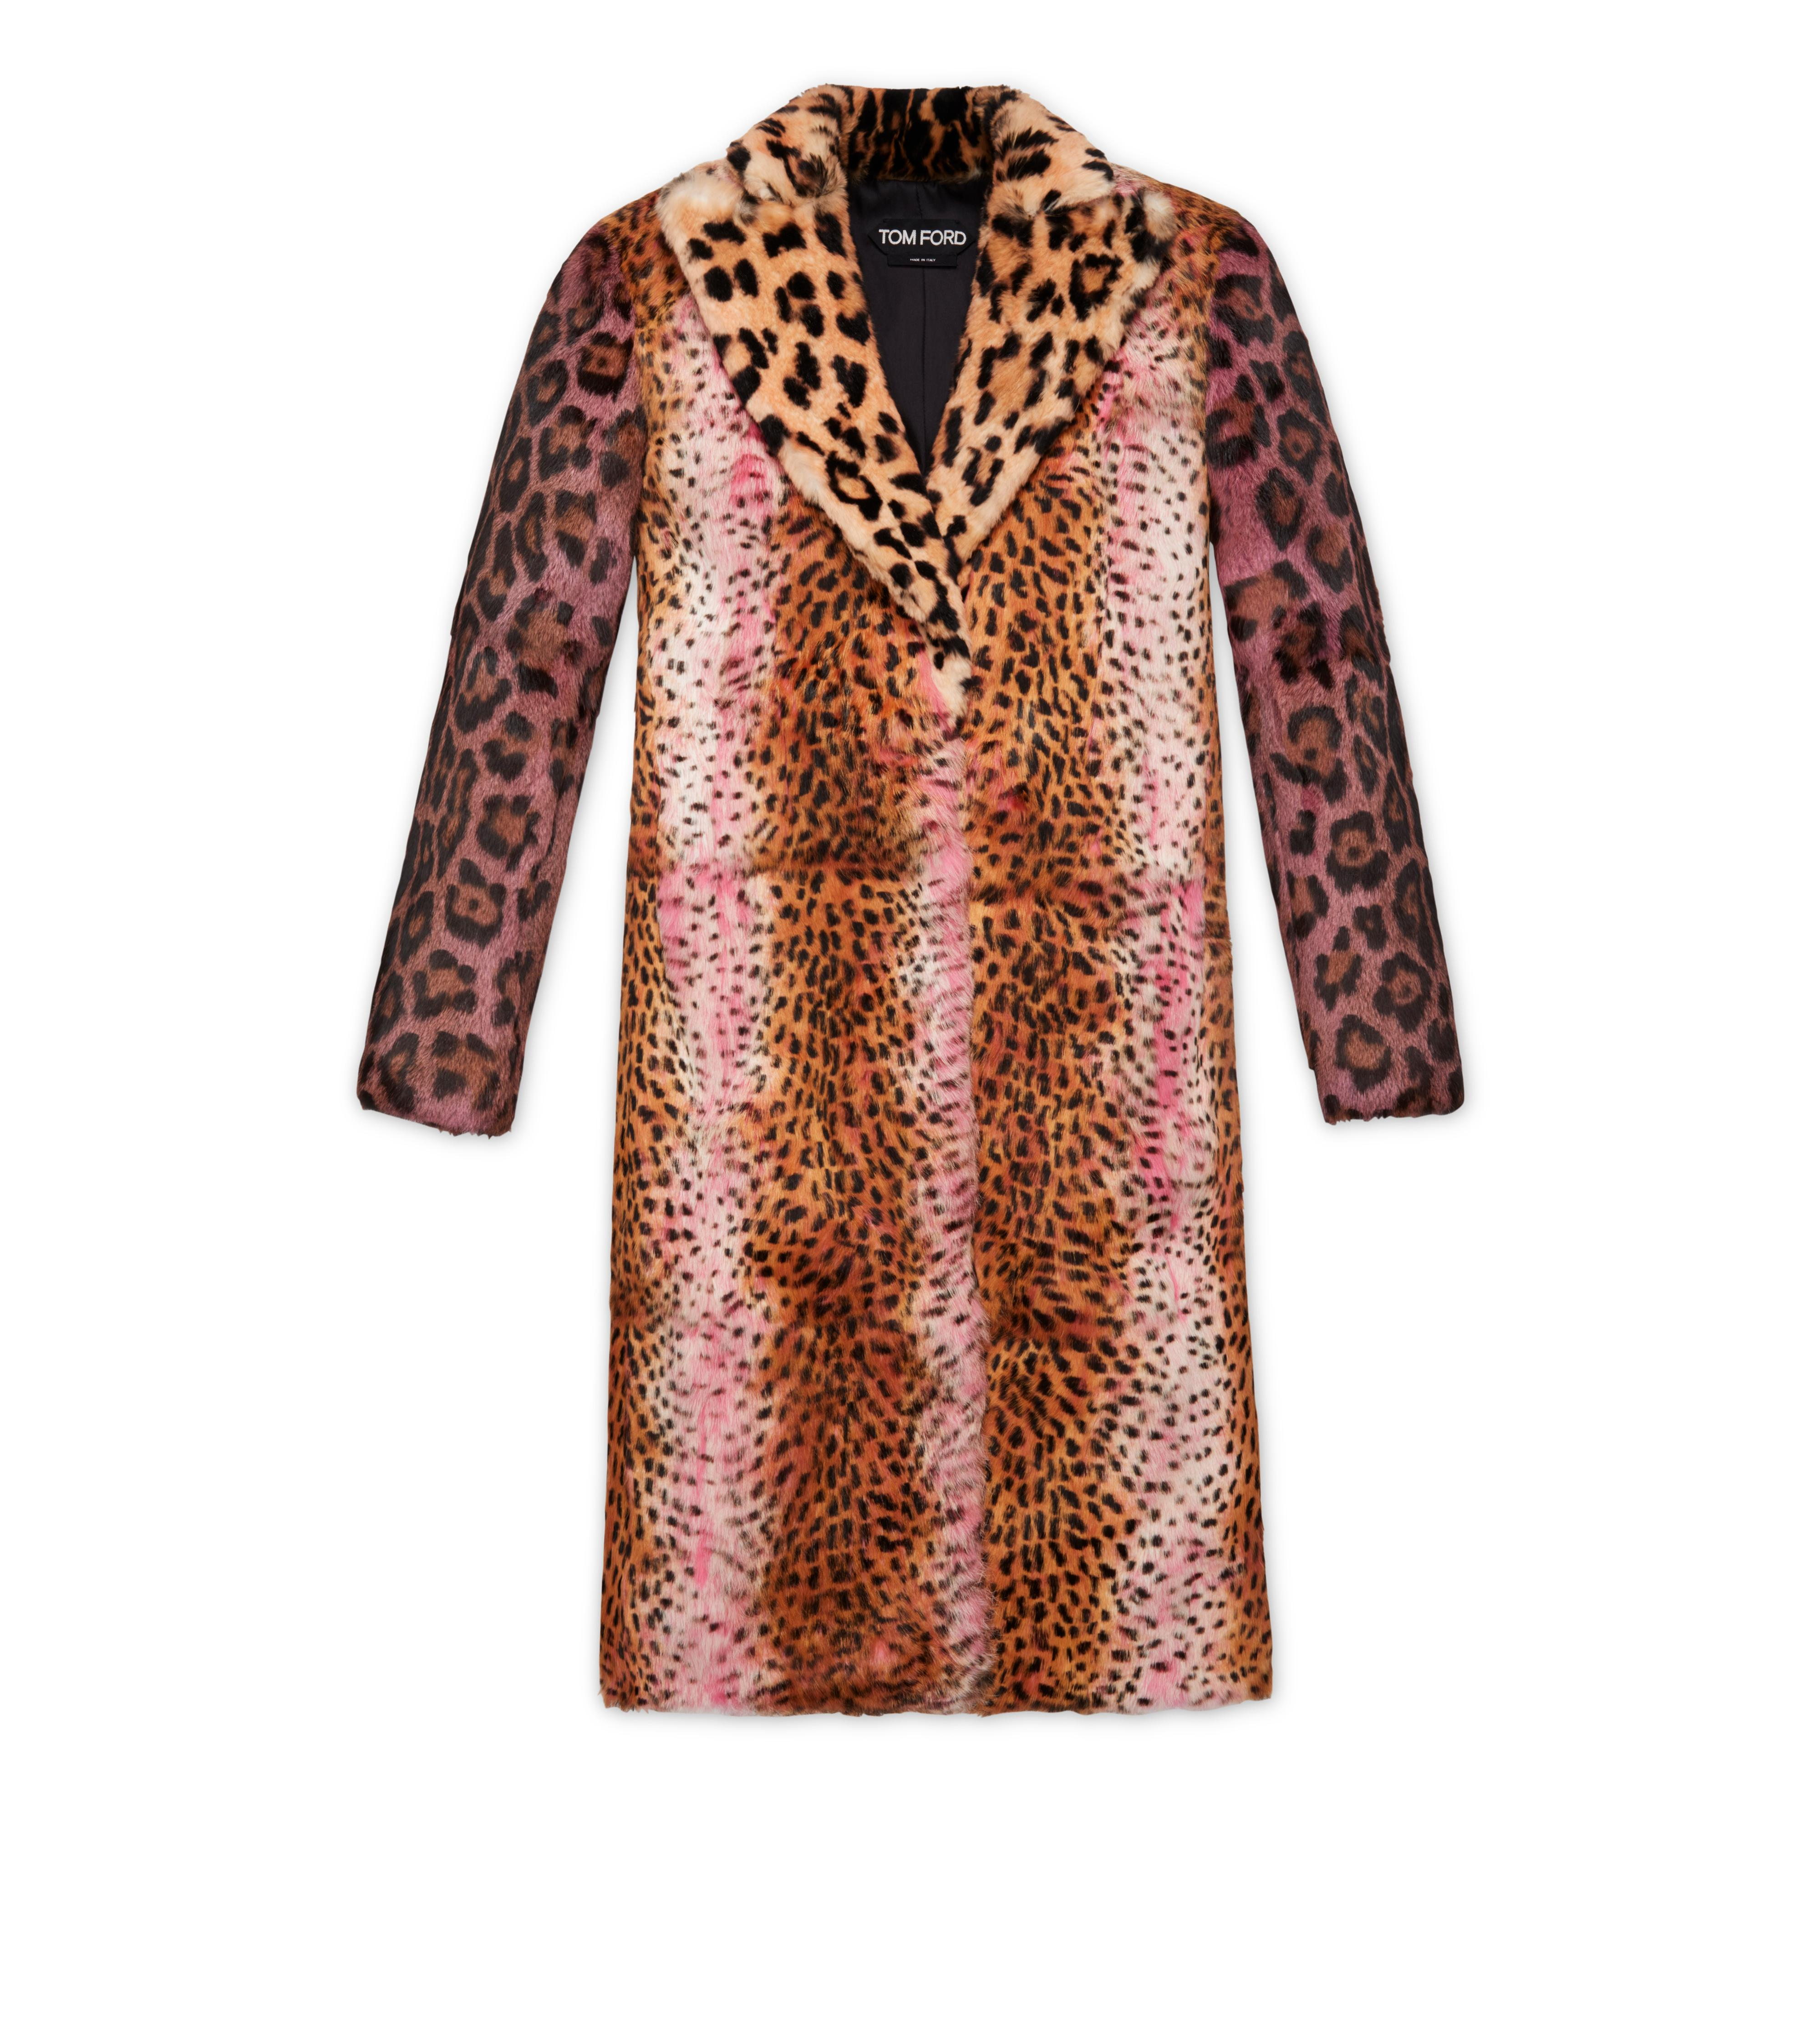 Strong-Shoulder Jaguar & Cheetah Patch Rabbit-Fur Coat Tom Ford Free Shipping Cheapest Outlet Best Place Free Shipping Wide Range Of Cheap Sale Outlet Locations o4v7A0